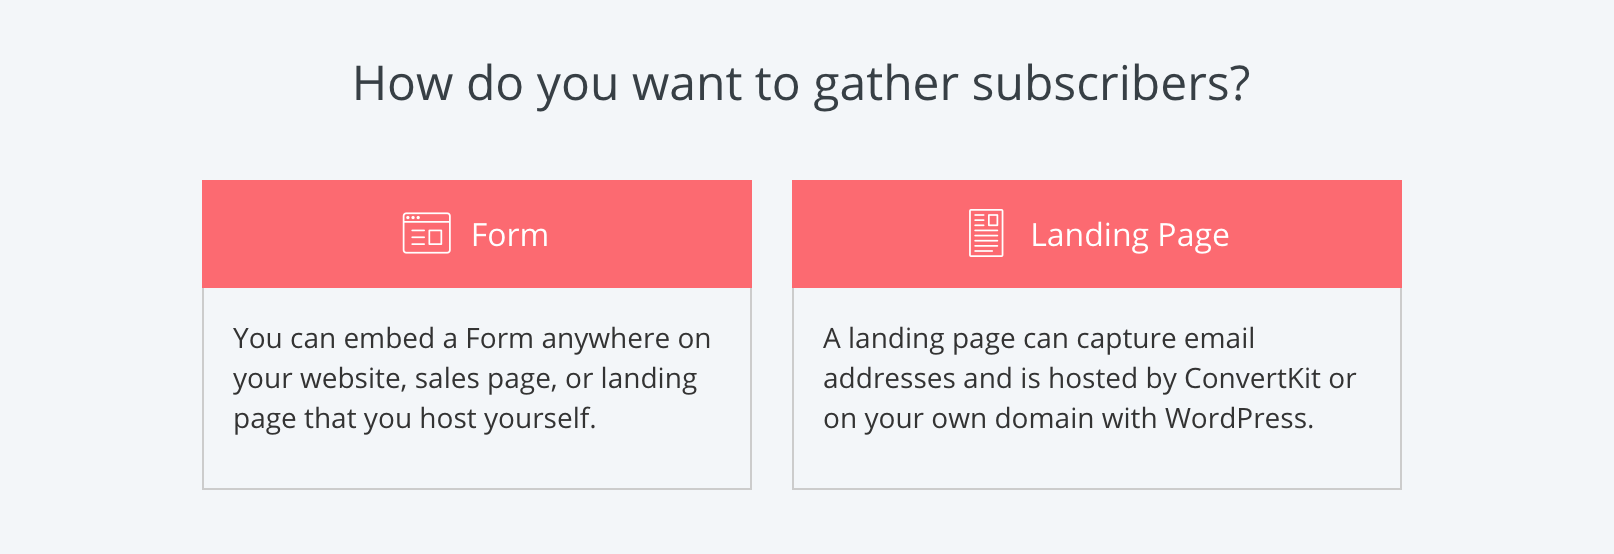 ConvertKit-Landing Page vs. Form.png